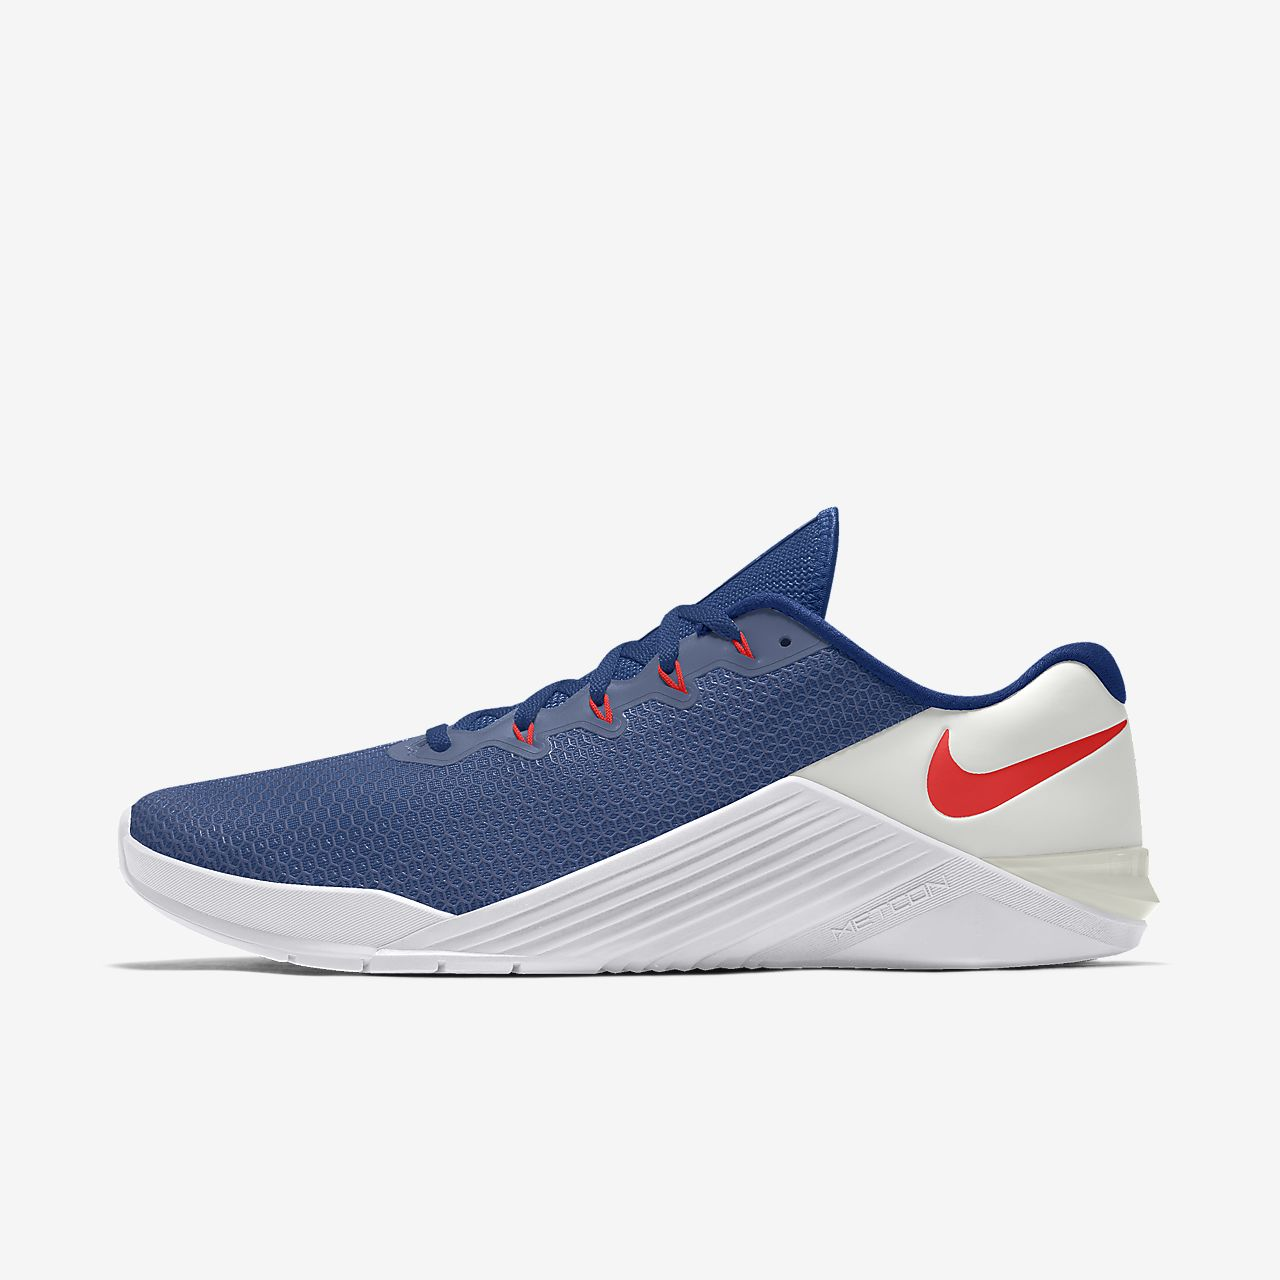 Nike Metcon 5 By You Custom Cross Training/Weightlifting Shoe